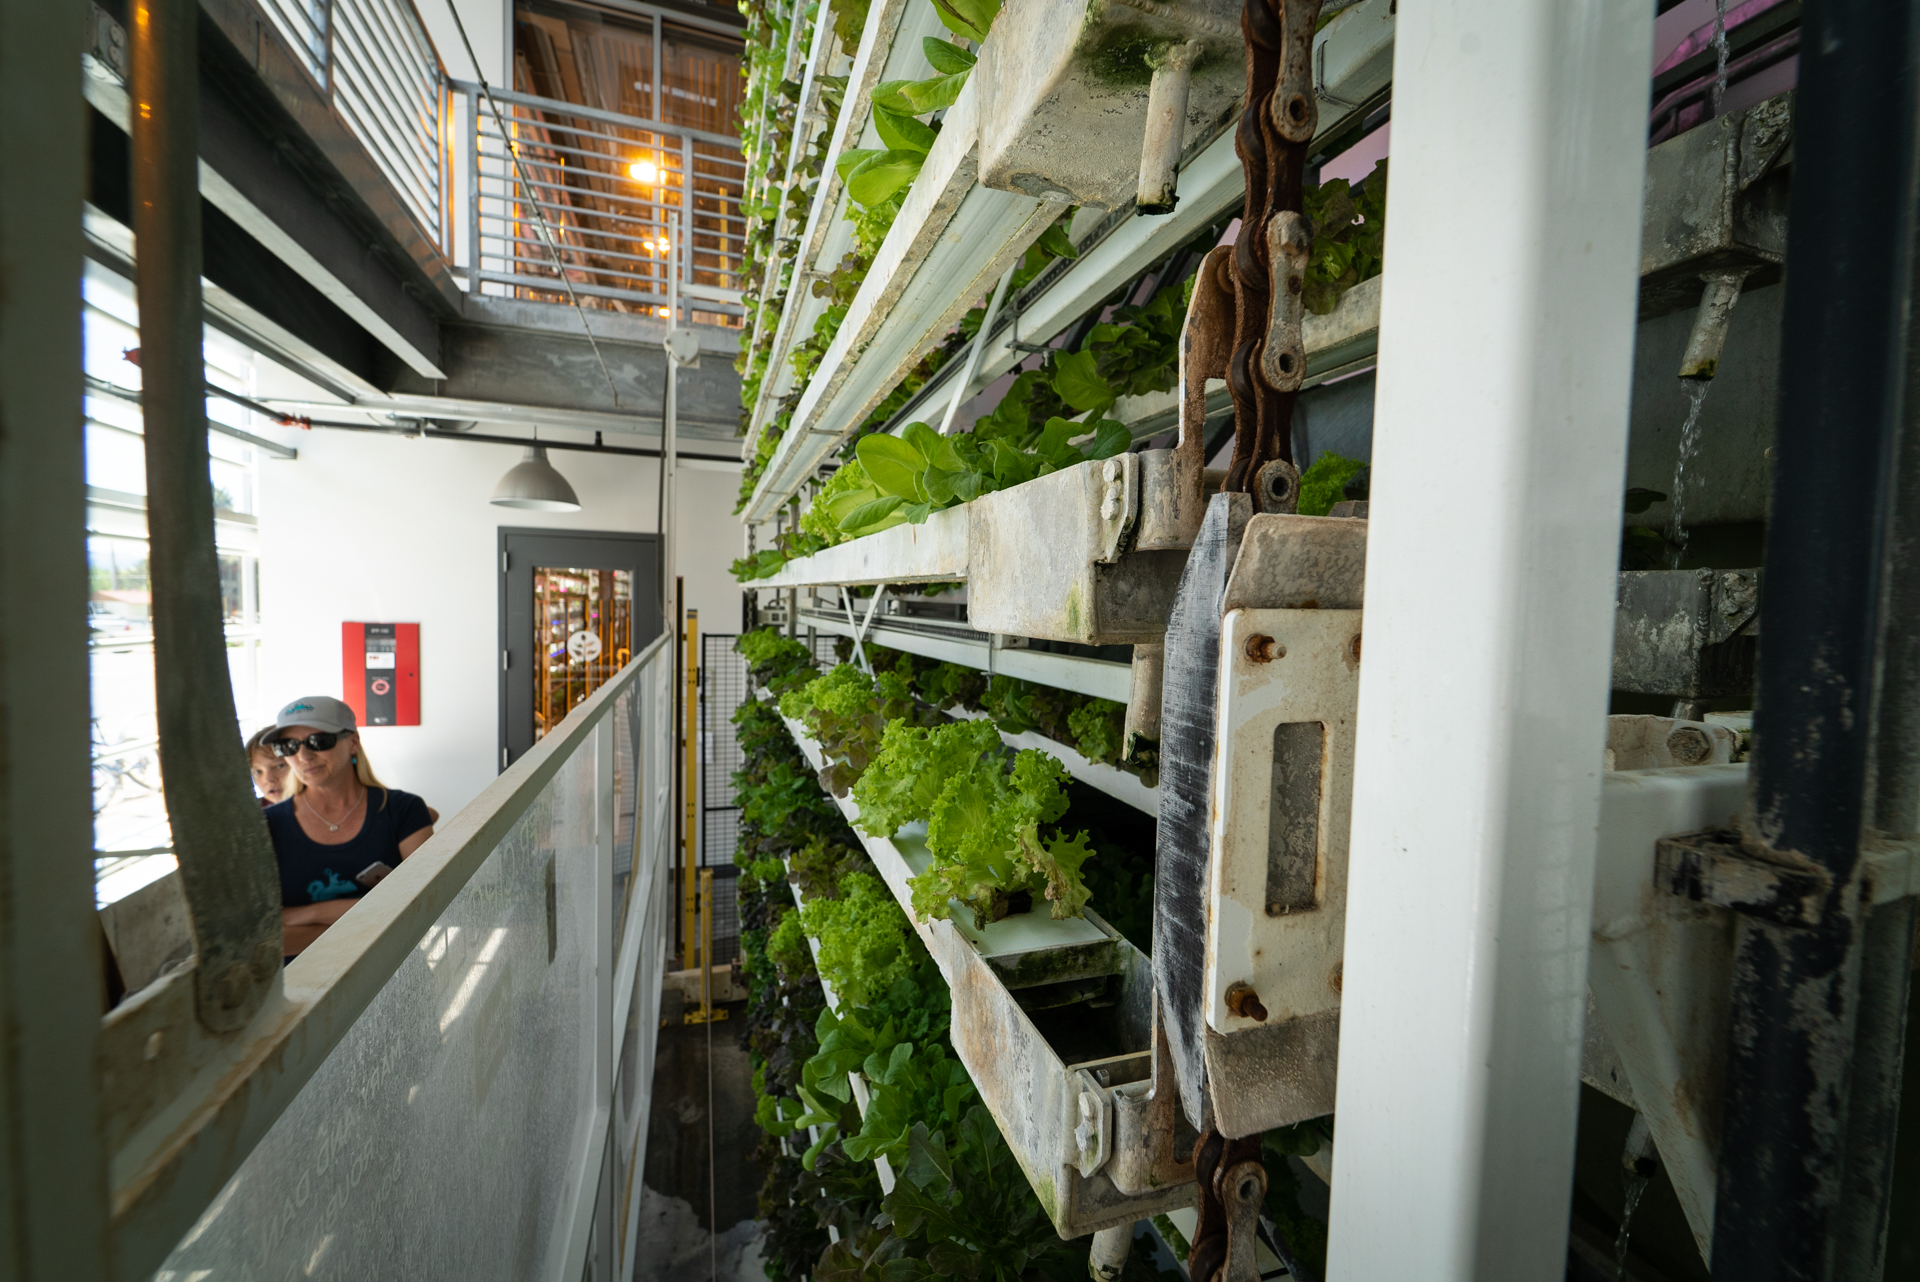 Vertical Harvest hydroponic garden is one of the best things to do in Jackson Hole